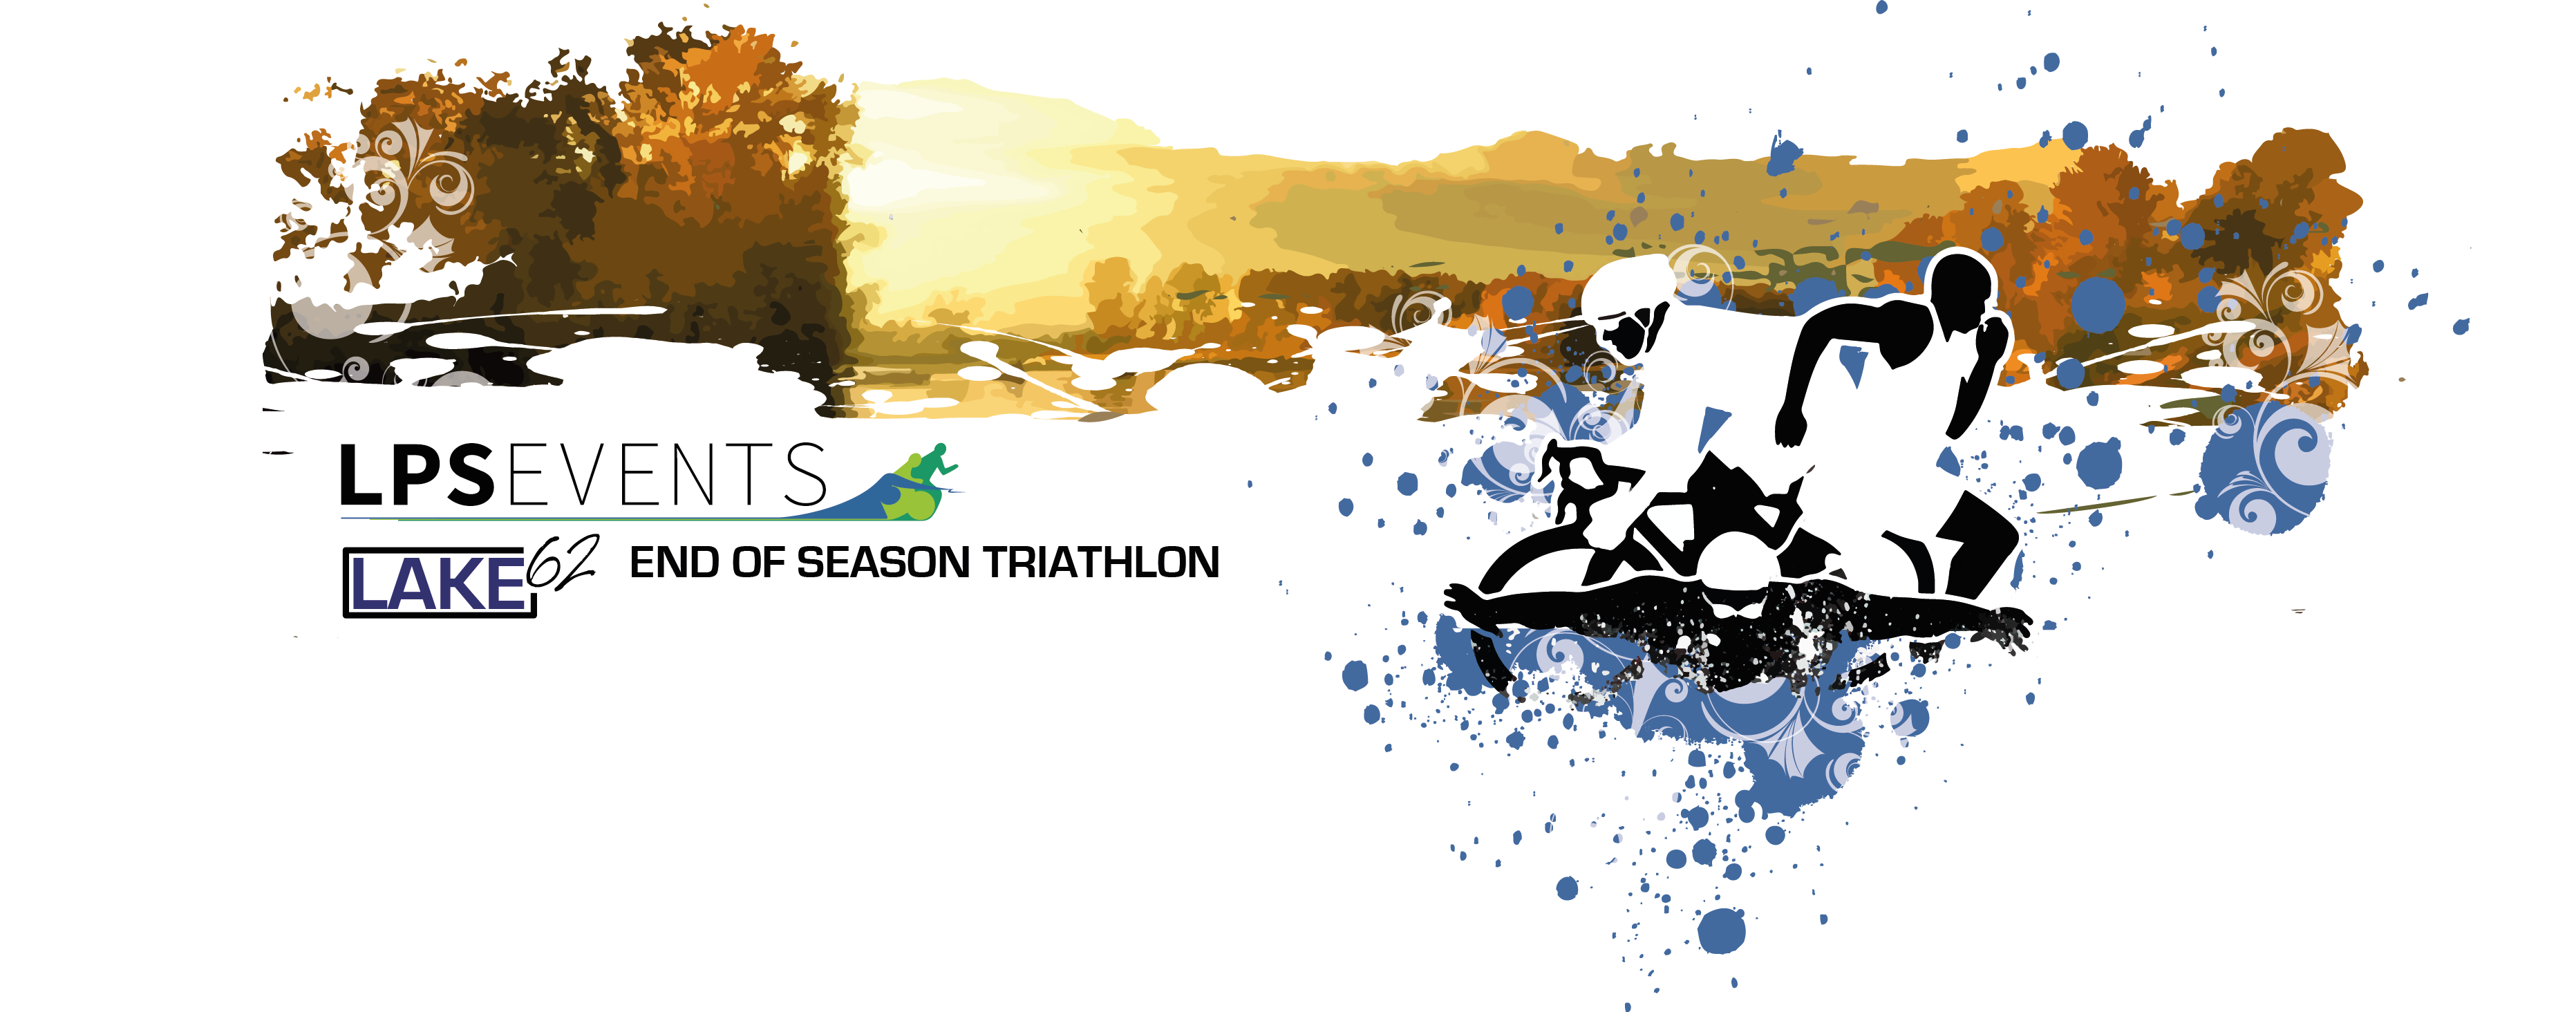 Cotswolds Lake 62 End Of Season Standard Triathlon - cover image